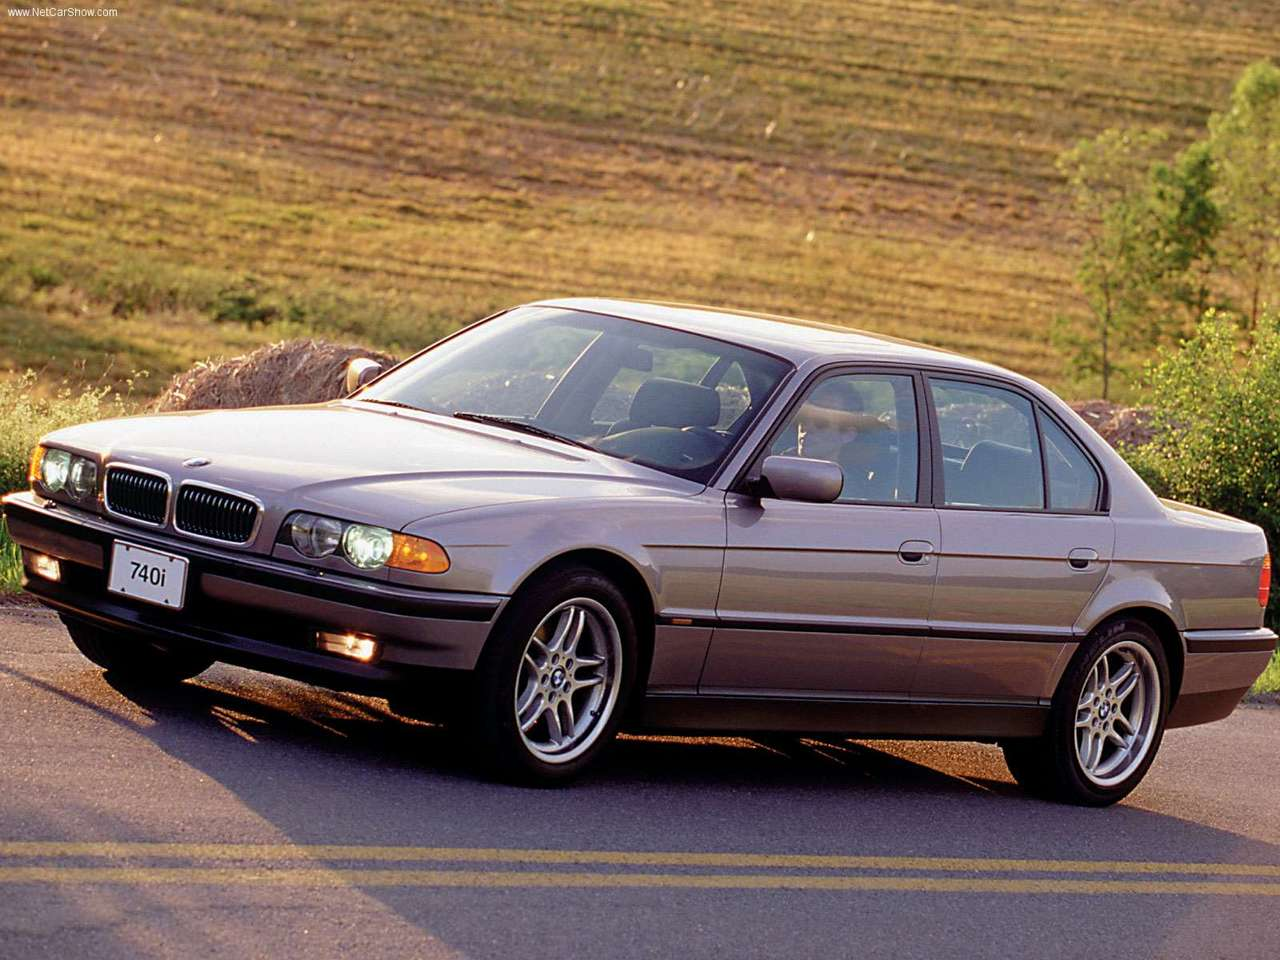 2000 bmw 740i the e38 generation 1995 2001 had a five speed automatic or manual transmission the engine variants in europe were 725tds 728i 730i  [ 1280 x 960 Pixel ]